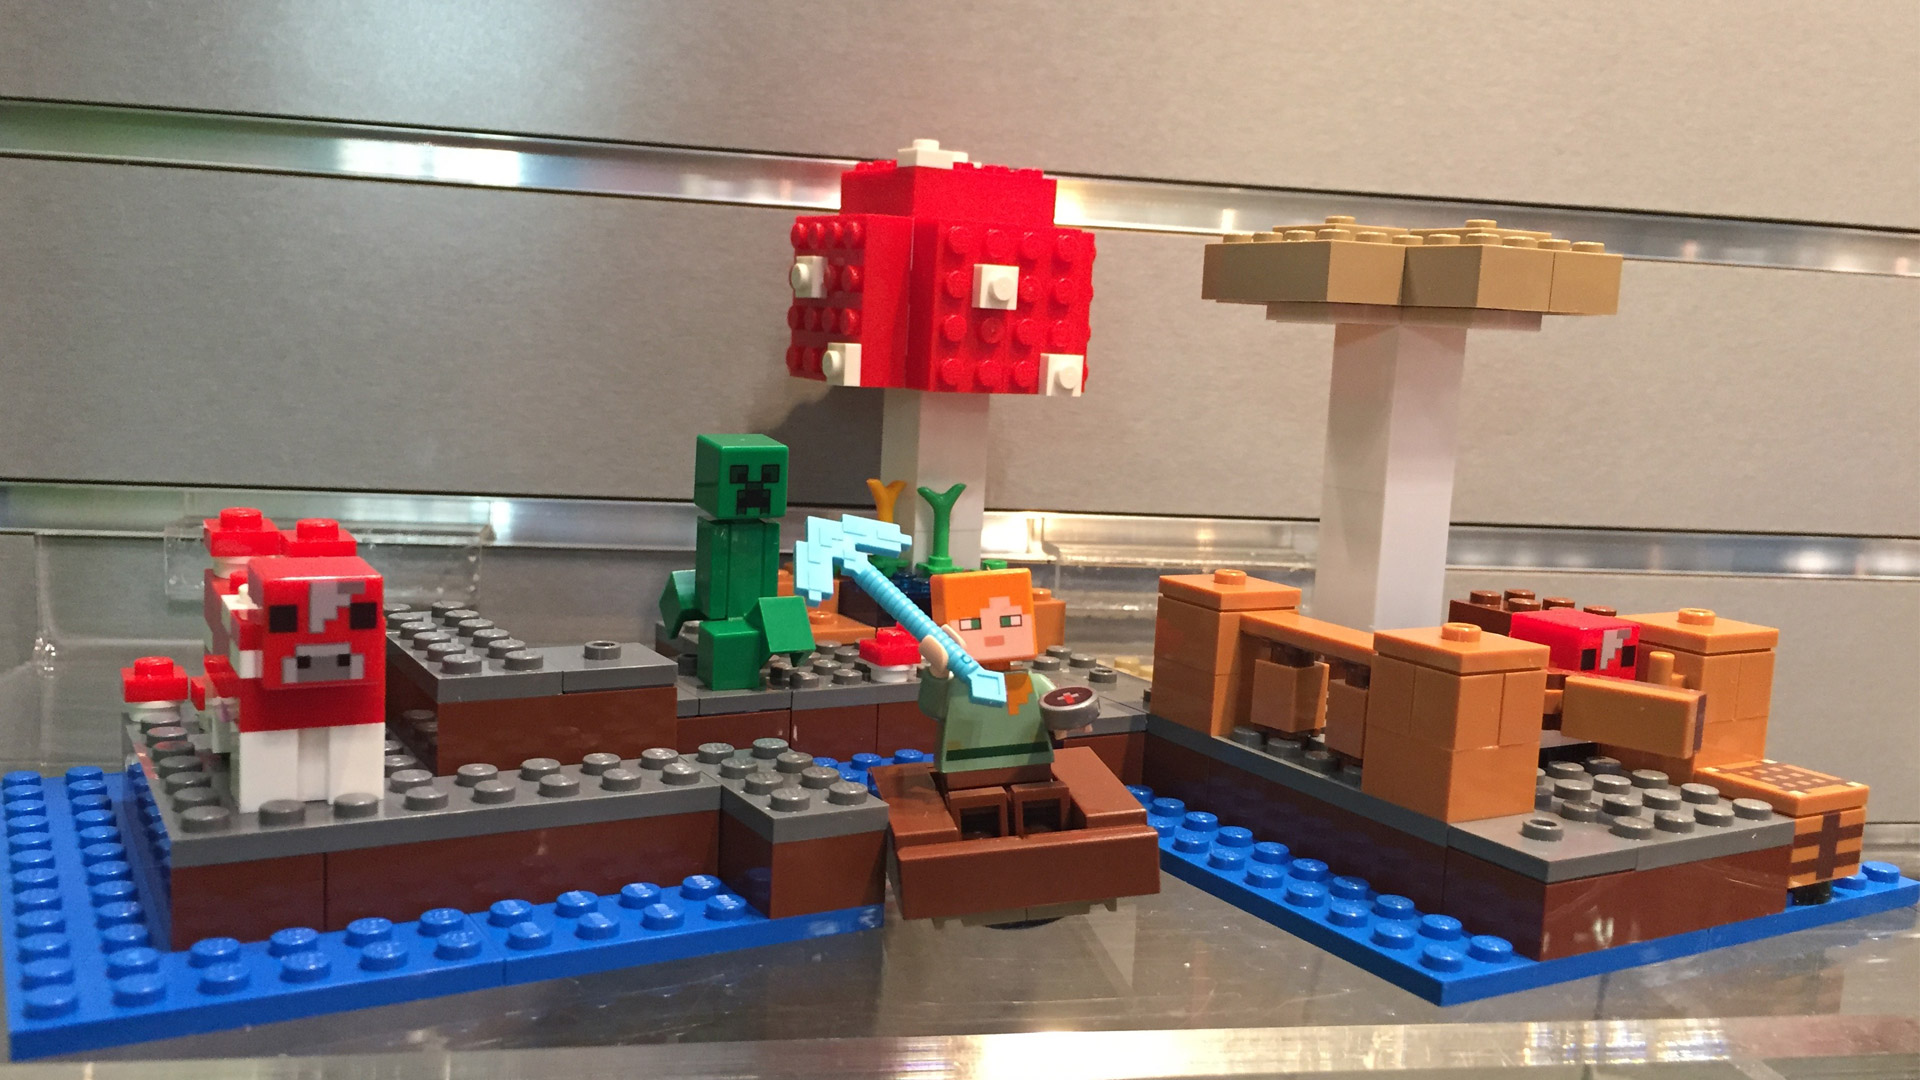 LEGO Minecraft Set 21129 The Mushroom Island at Toy Fair 2017